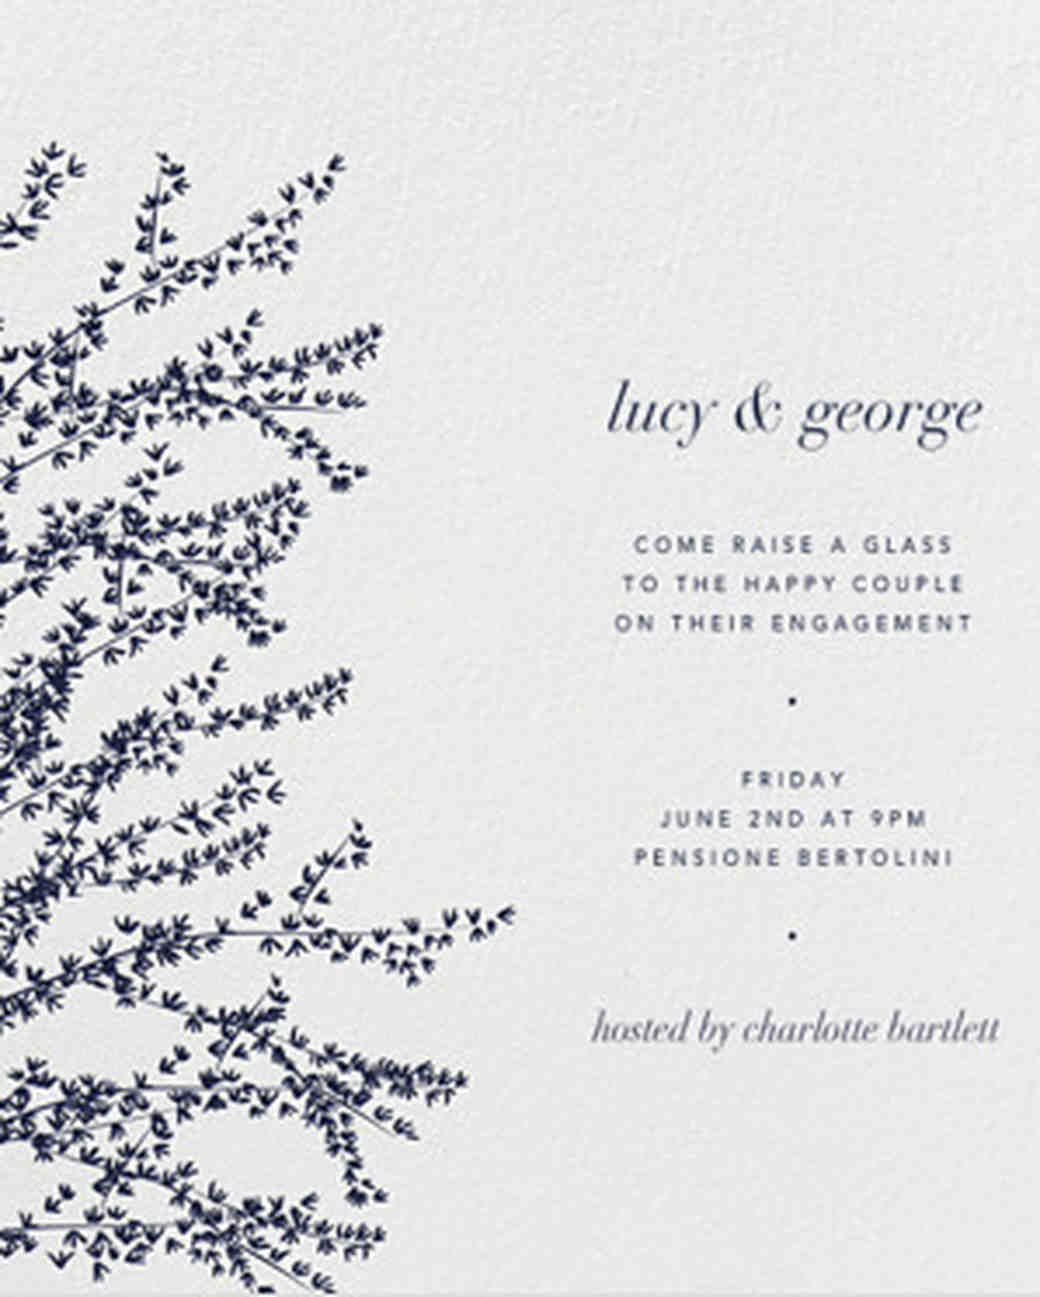 paperless-engagement-party-invitations-paperless-post-branches-0416.jpg